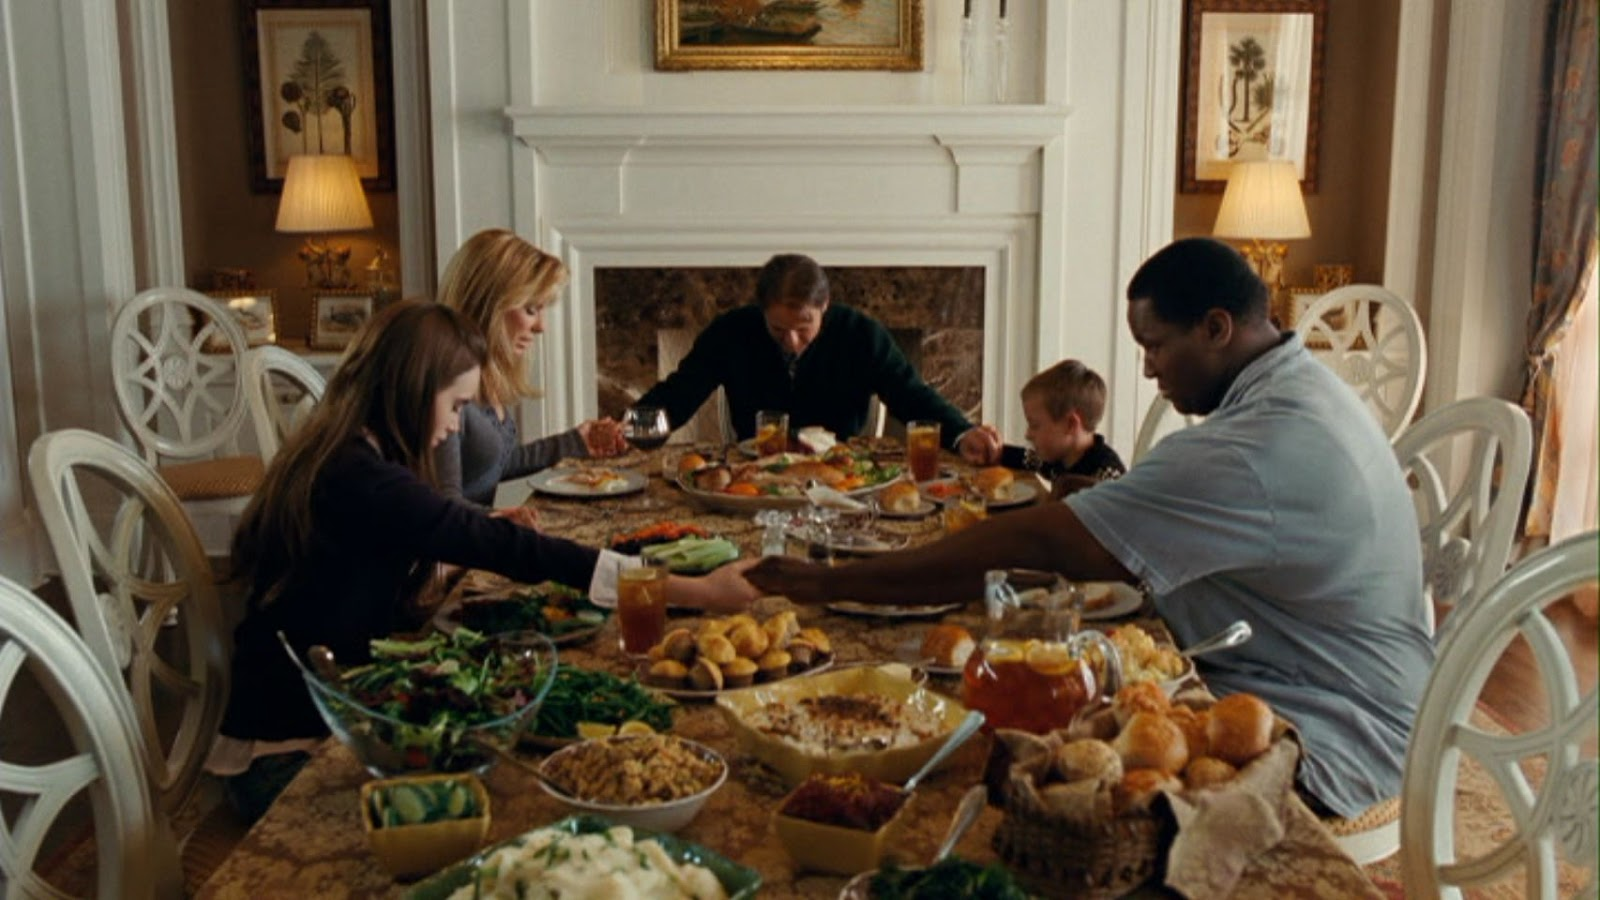 women in sports week the blind side the most insulting movie the tuohy family prays over mounds of food